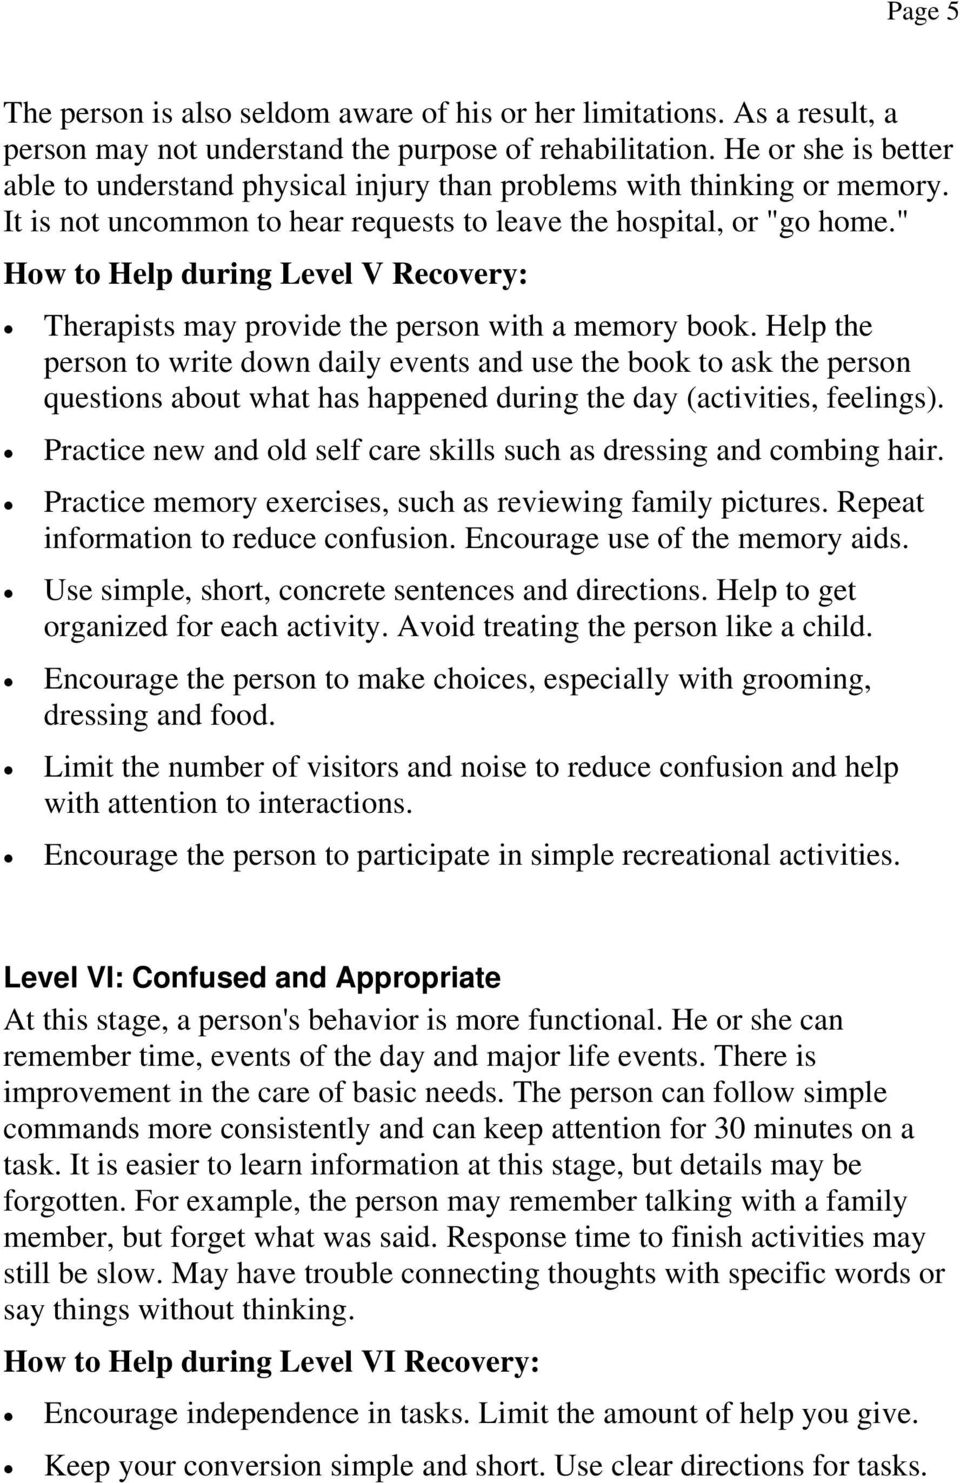 """ How to Help during Level V Recovery: Therapists may provide the person with a memory book."